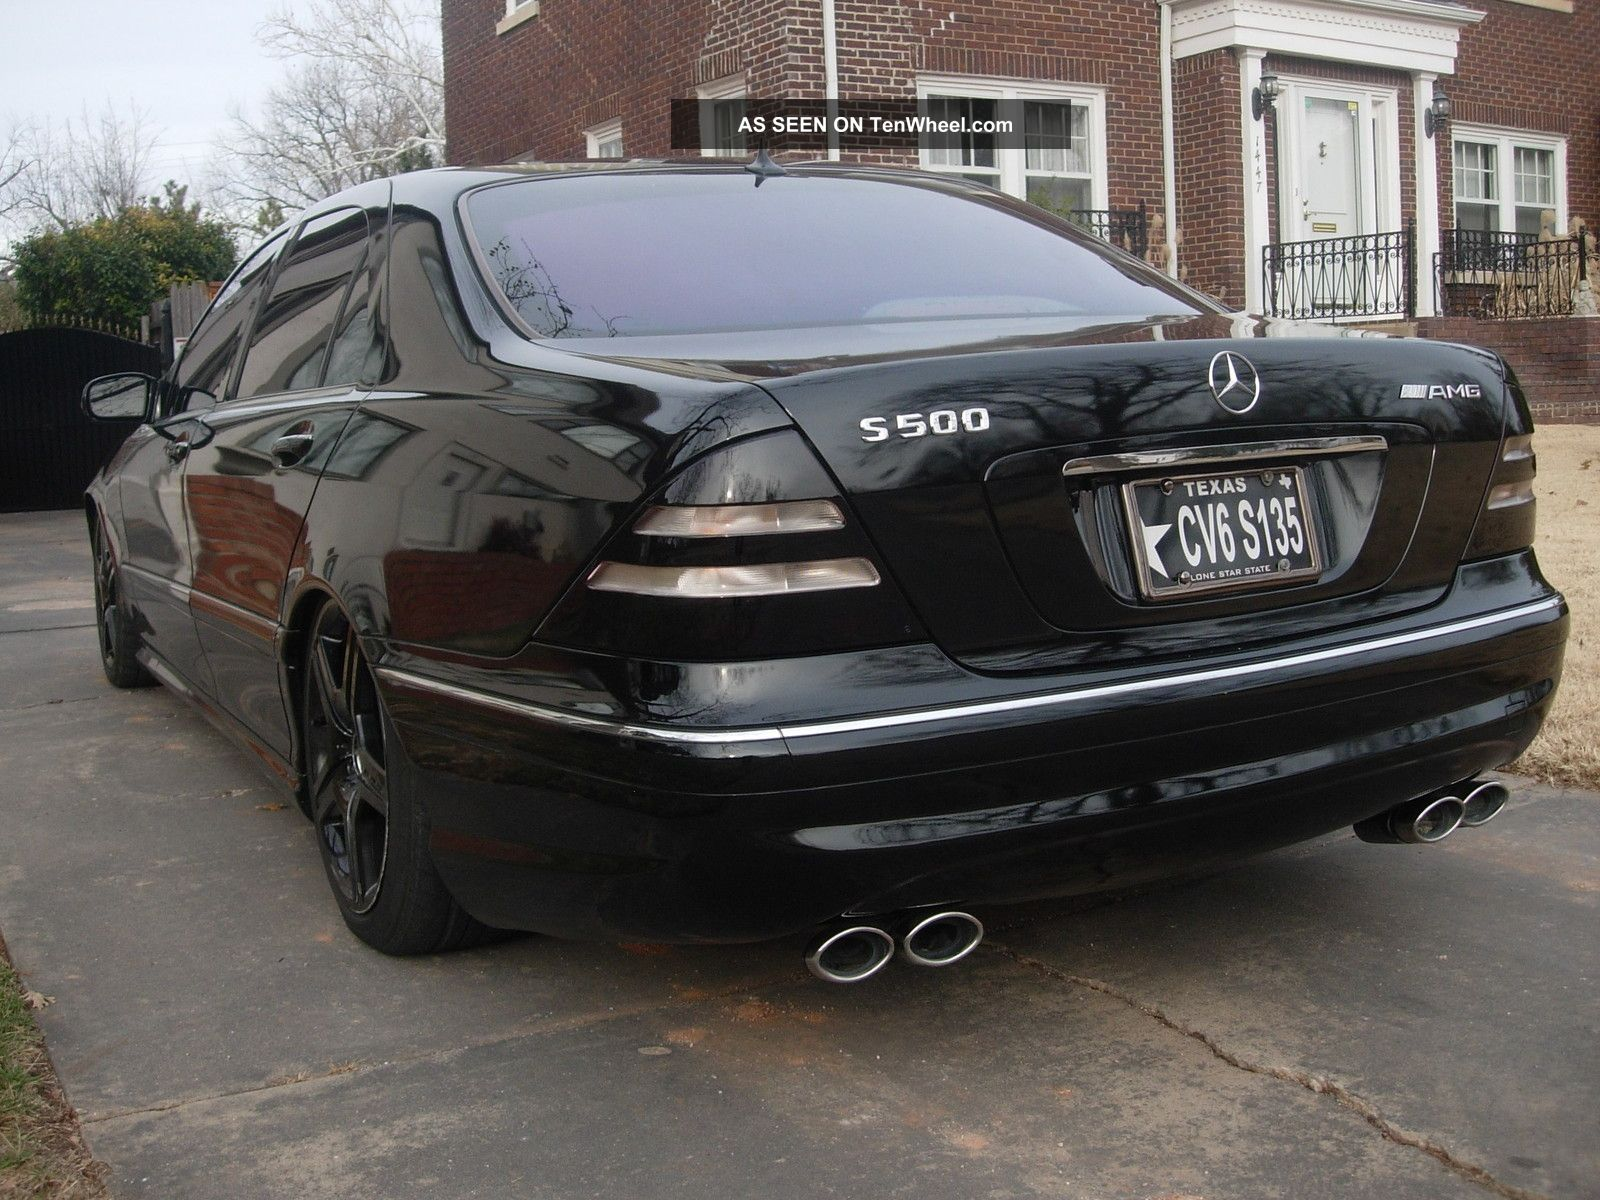 hight resolution of 2002 mercedes benz s500 air bag suspension blacked out 19 amg rims tint exhaust